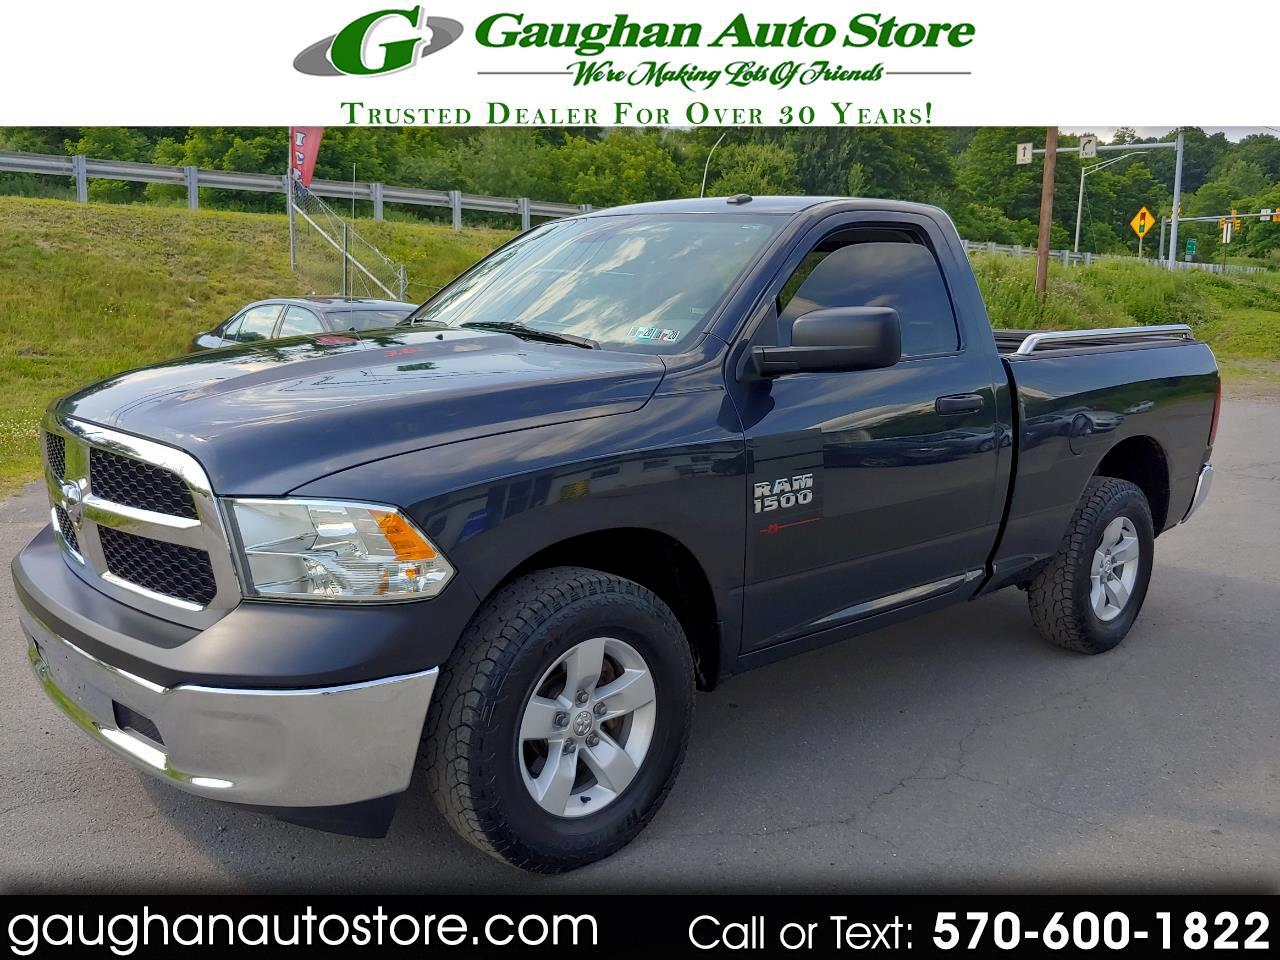 2013 RAM 1500 Tradesman Regular Cab